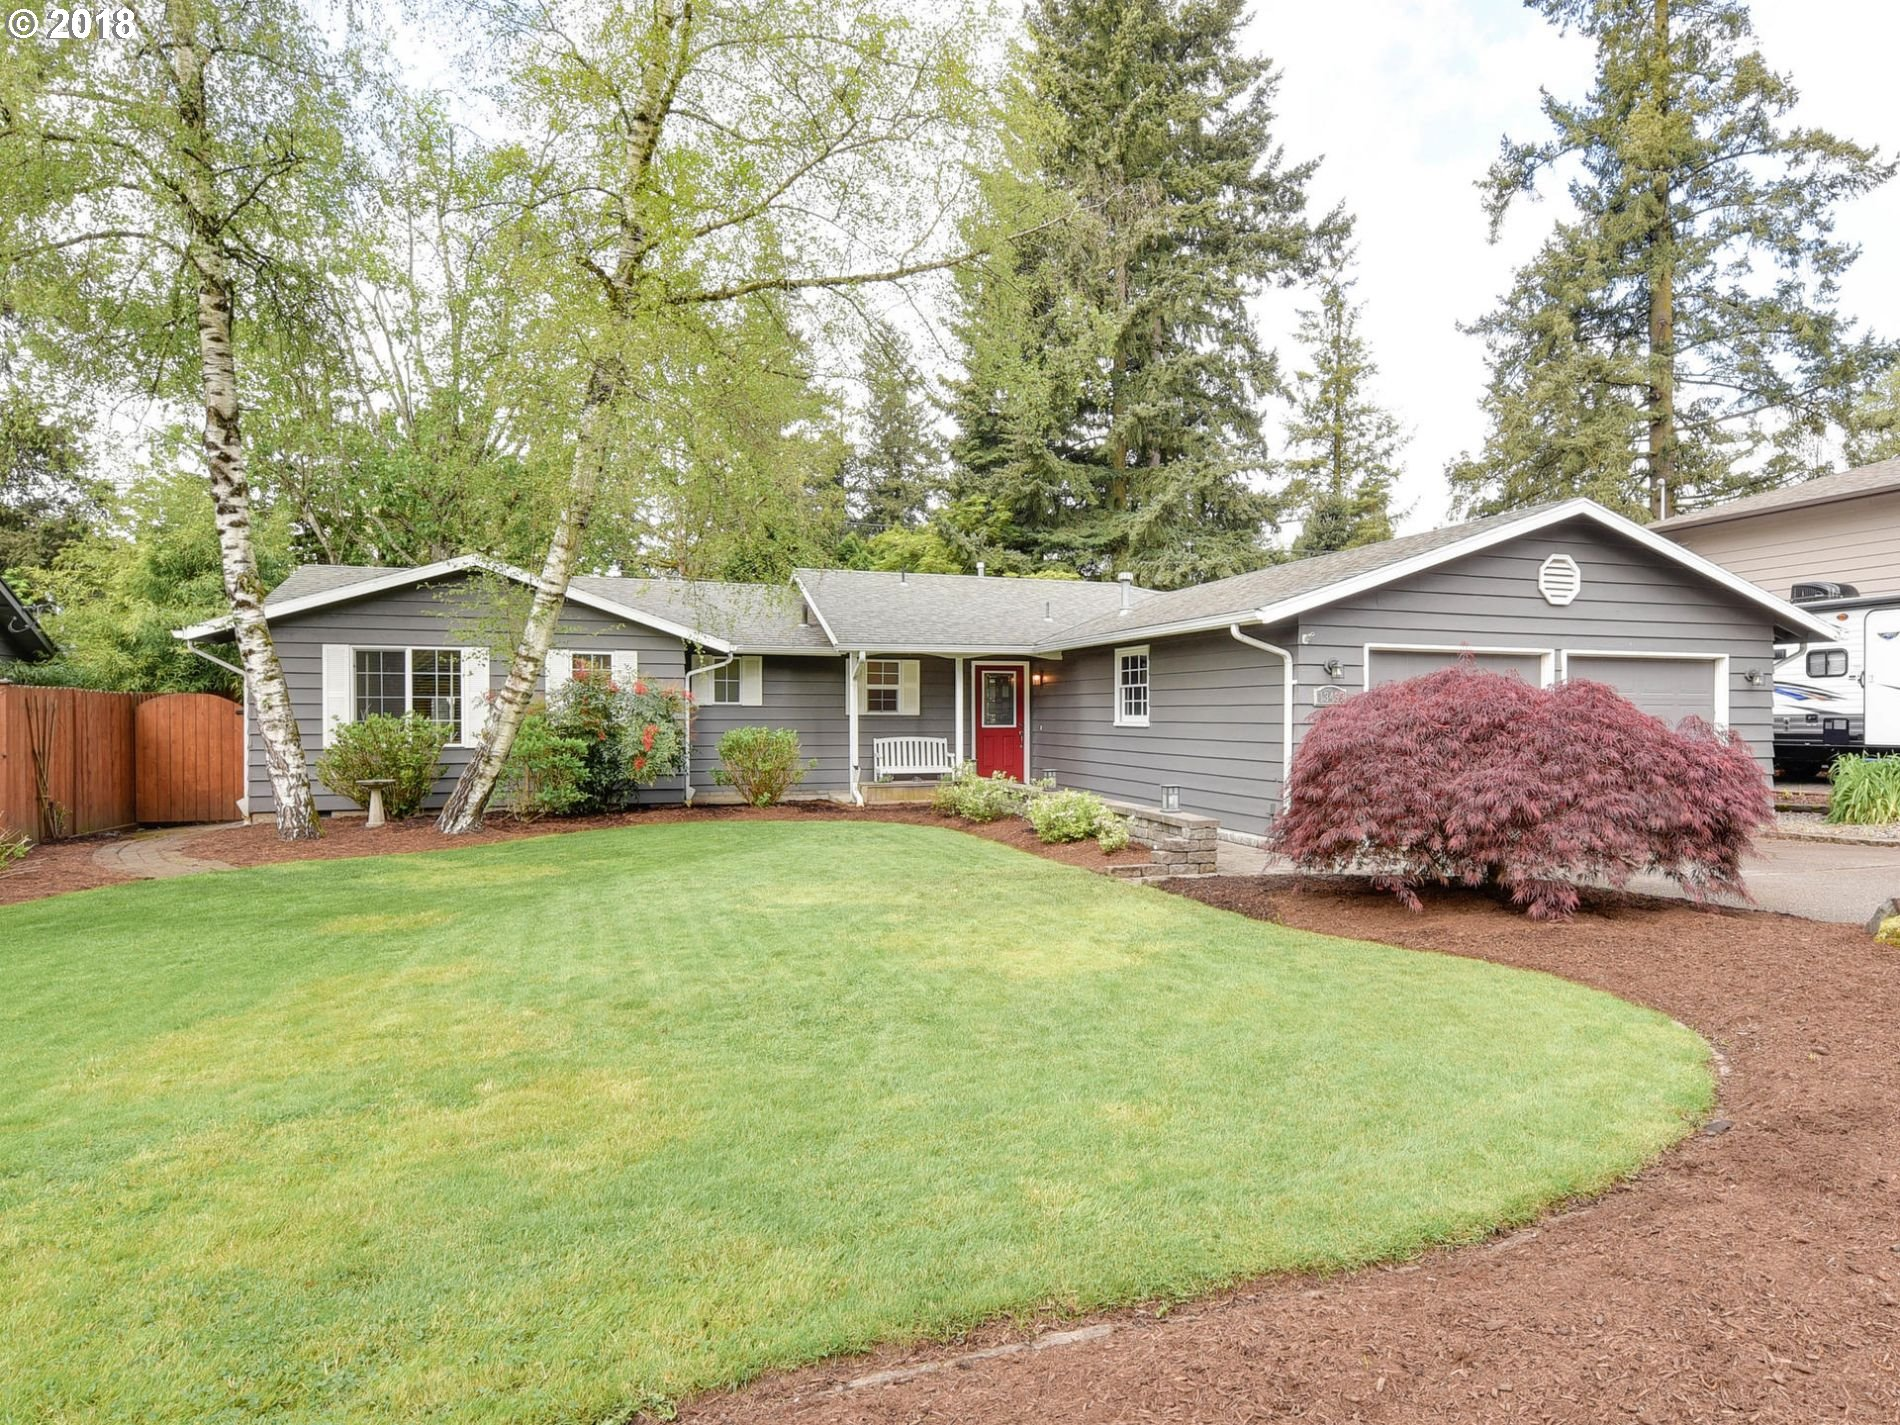 1508 sq. ft 3 bedrooms 2 bathrooms  House For Sale,Portland, OR